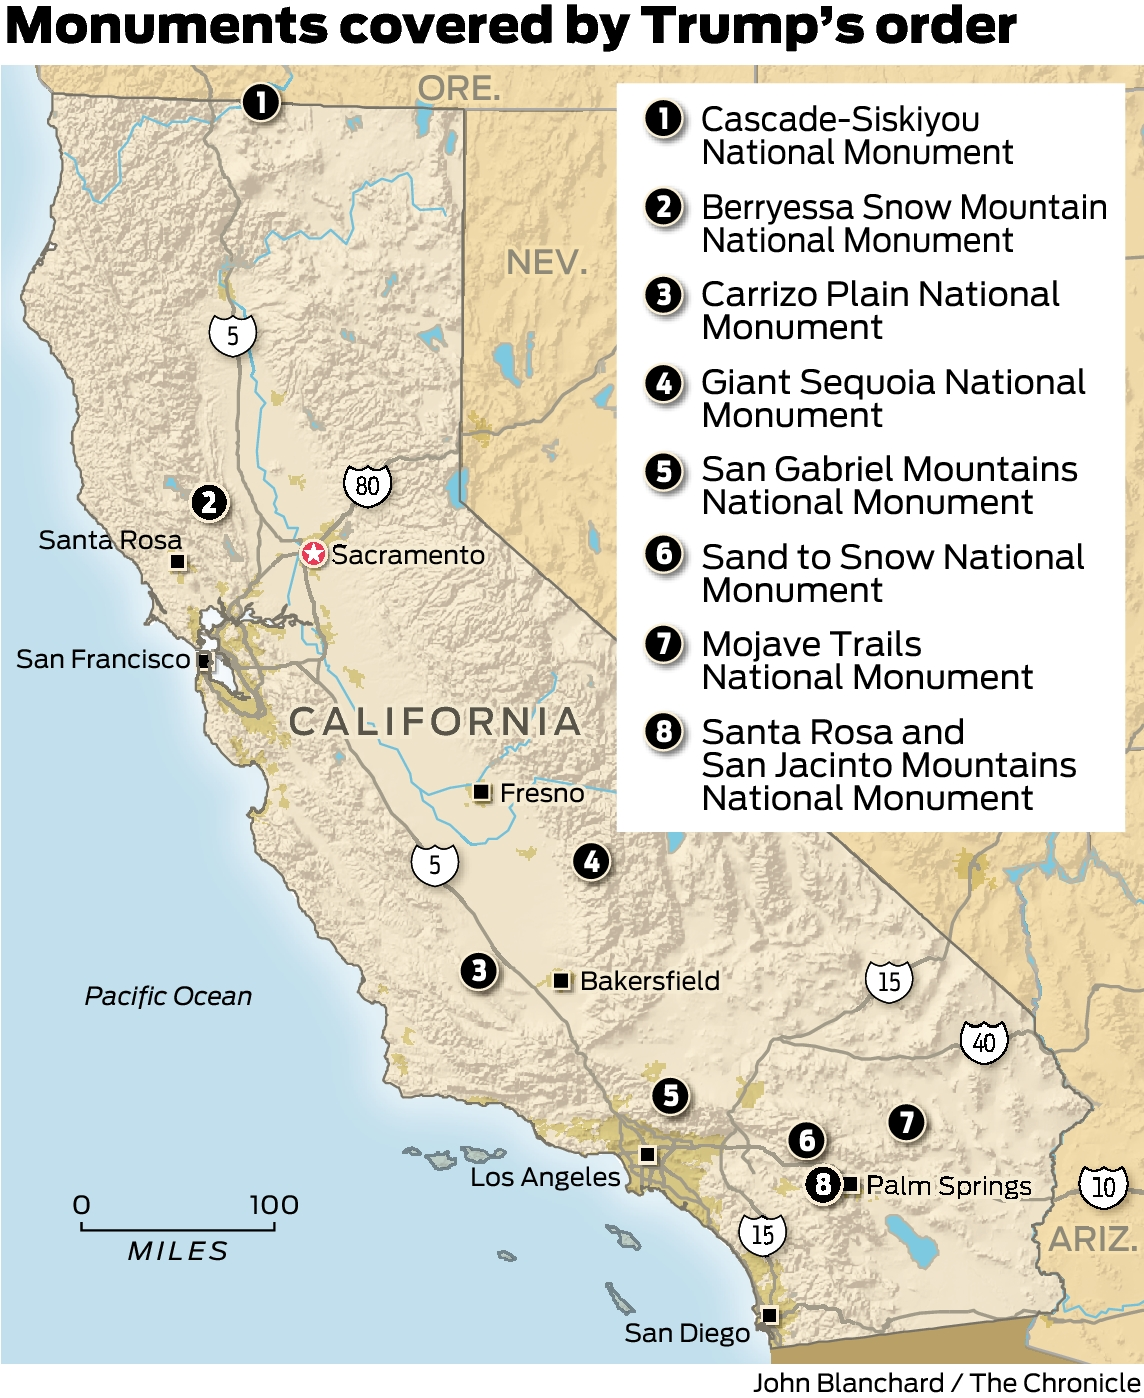 National monuments under siege by Trump include 8 in California ...